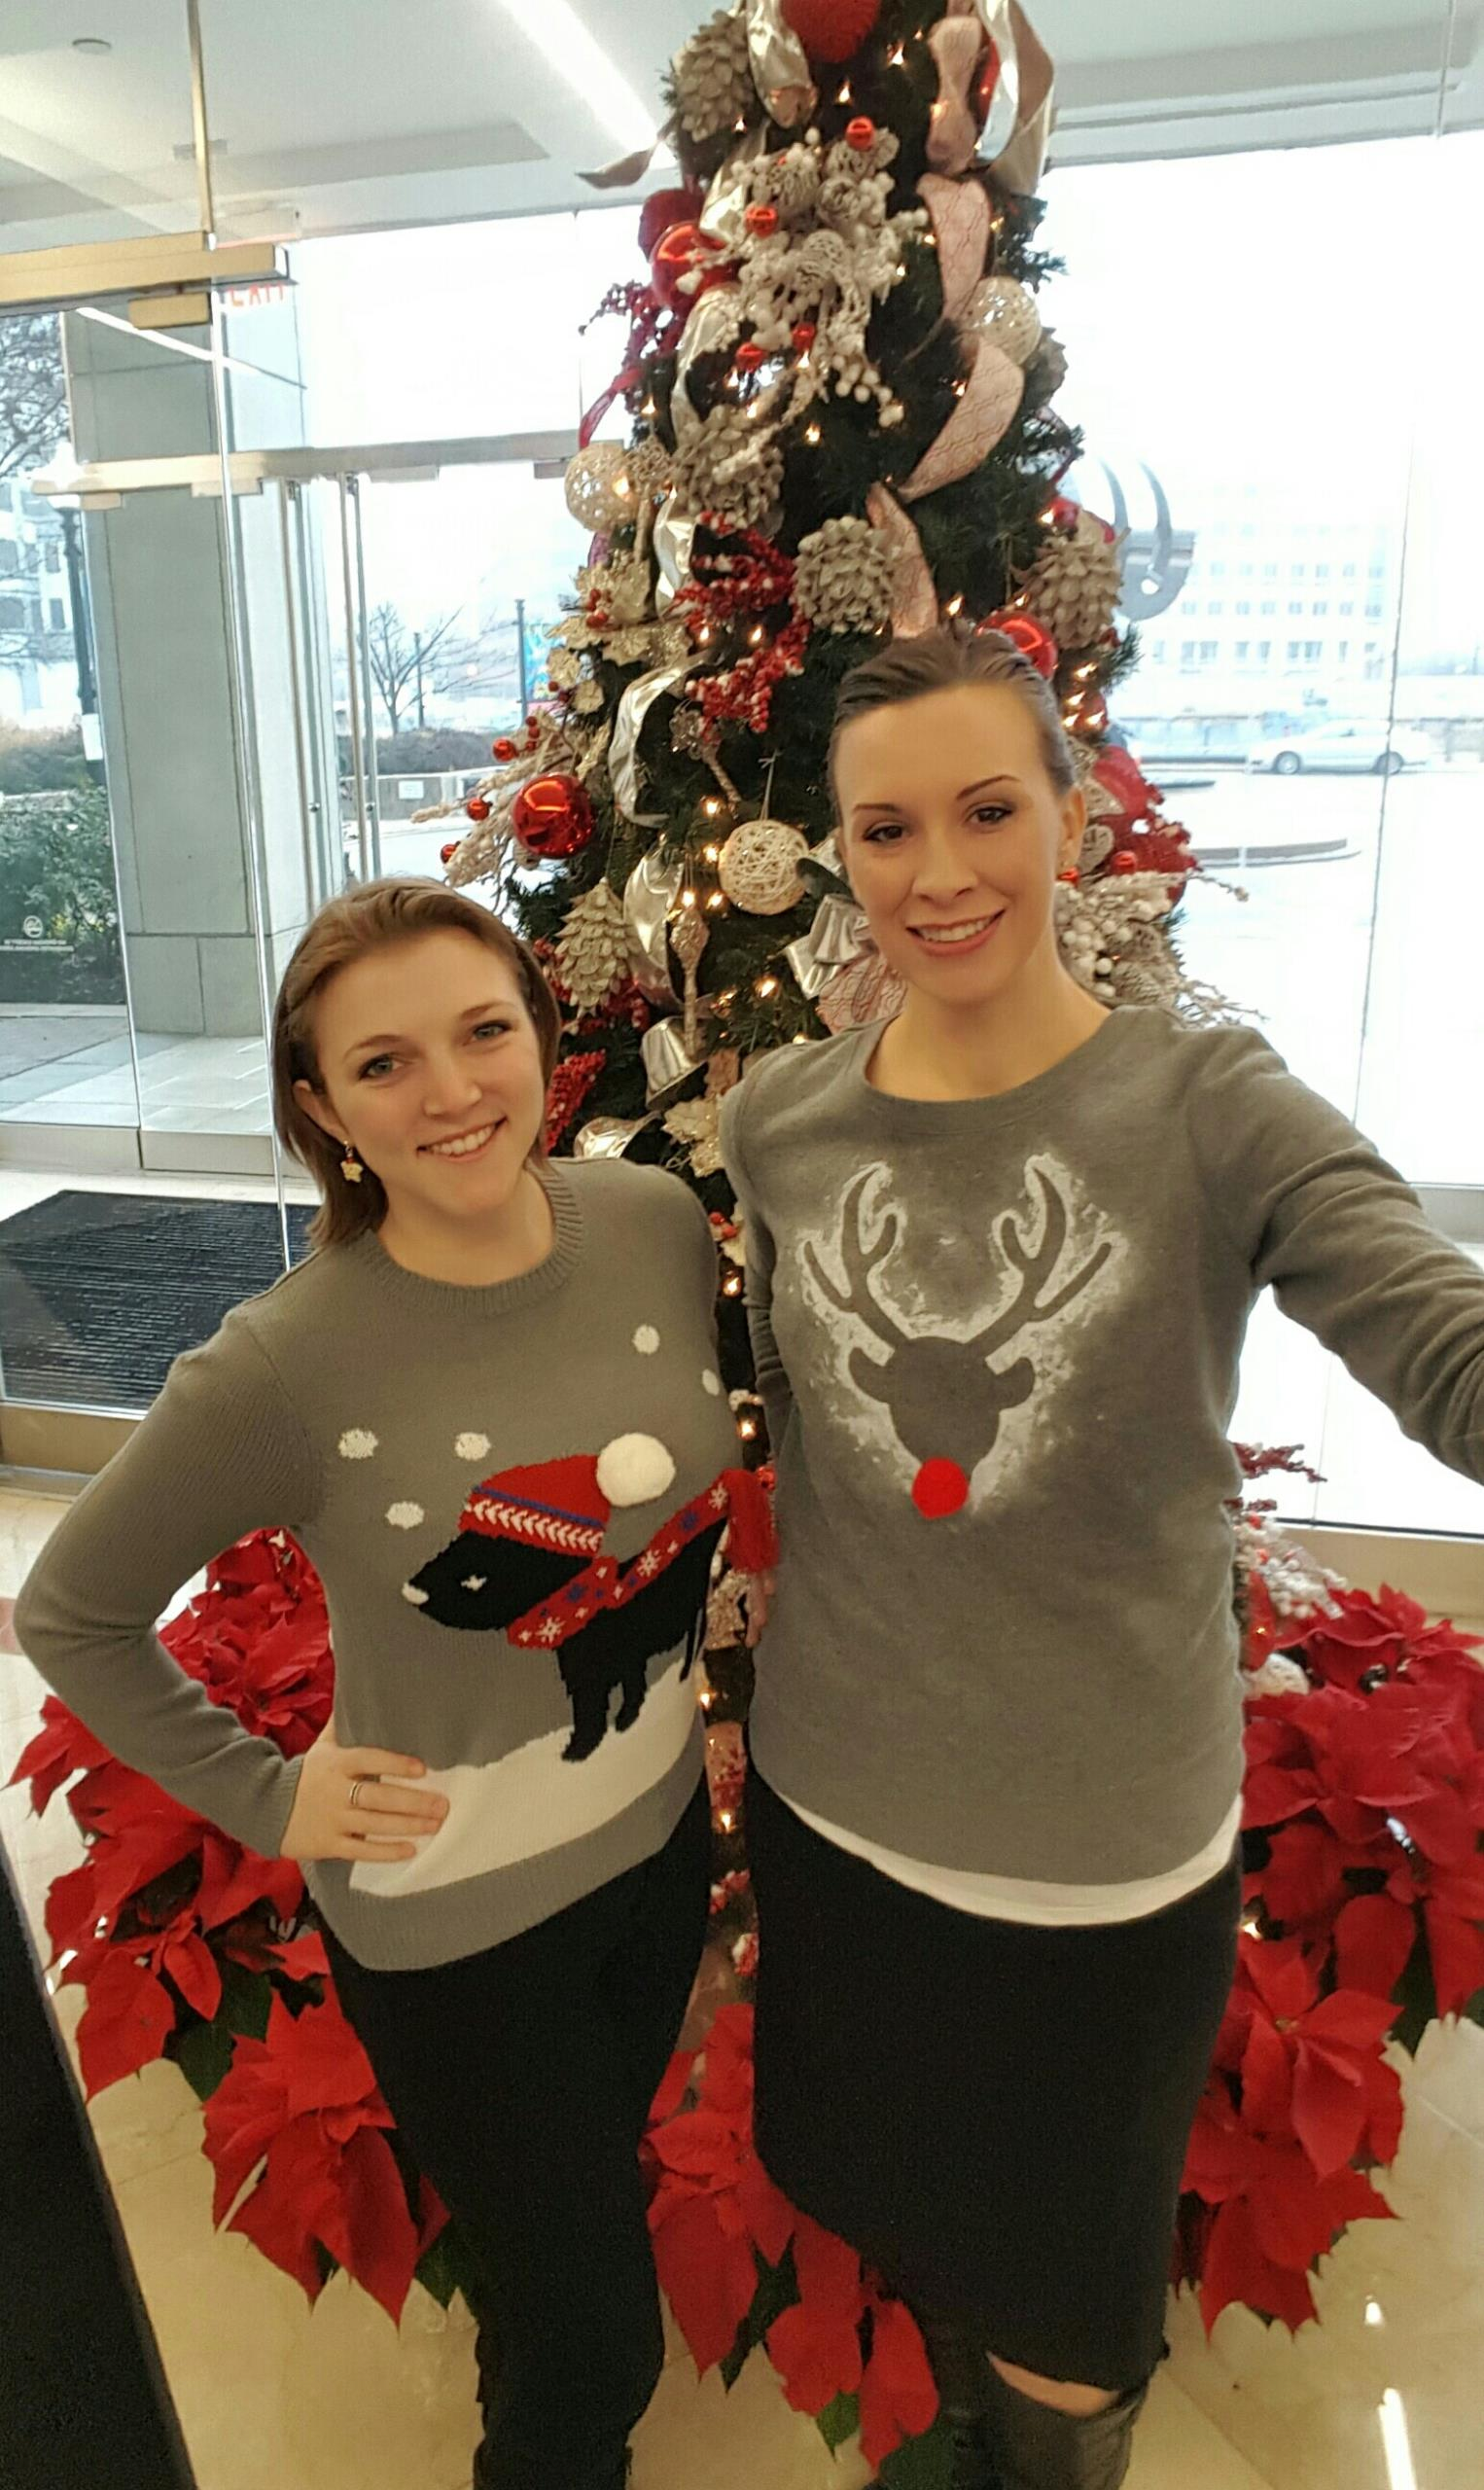 Arlington, VA - It's Tacky Sweater day at our Ballston Center!  Happy Holidays from Metro Offices Ballston staff!